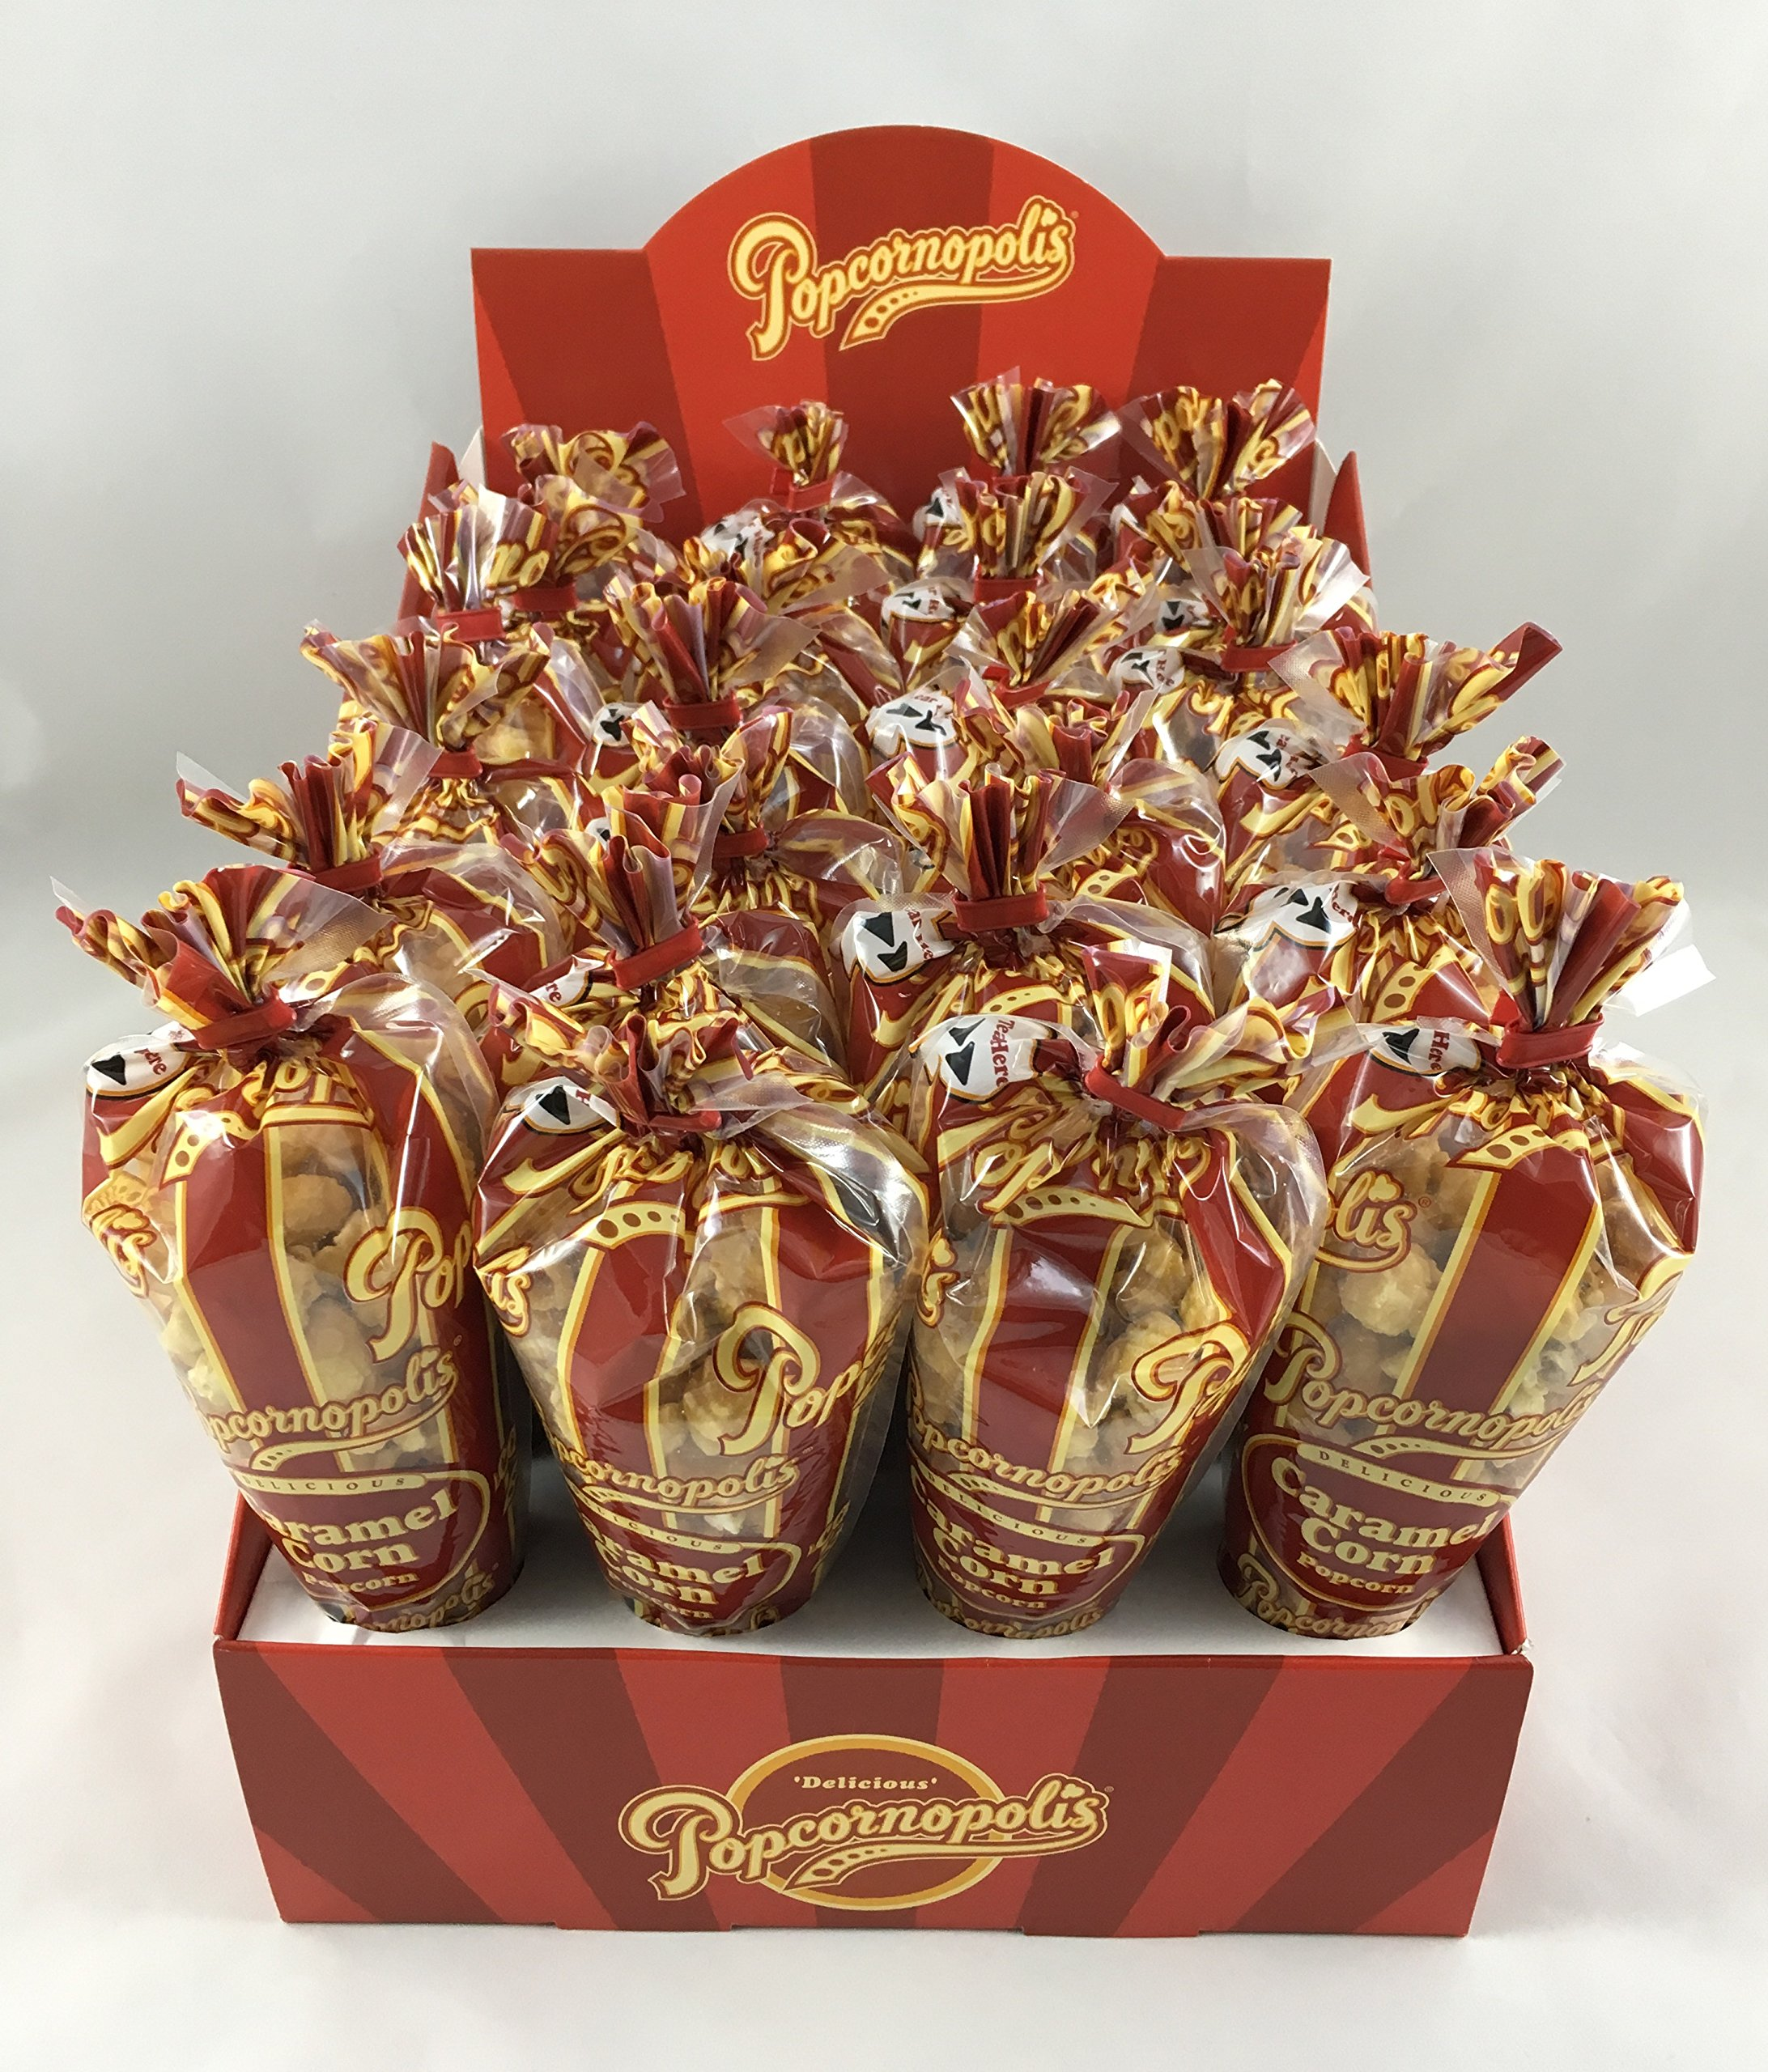 Popcornopolis Caramel Mini Cones 24ct. with Display Box, Great for Party Favors, & Snackrooms by Popcornopolis (Image #1)